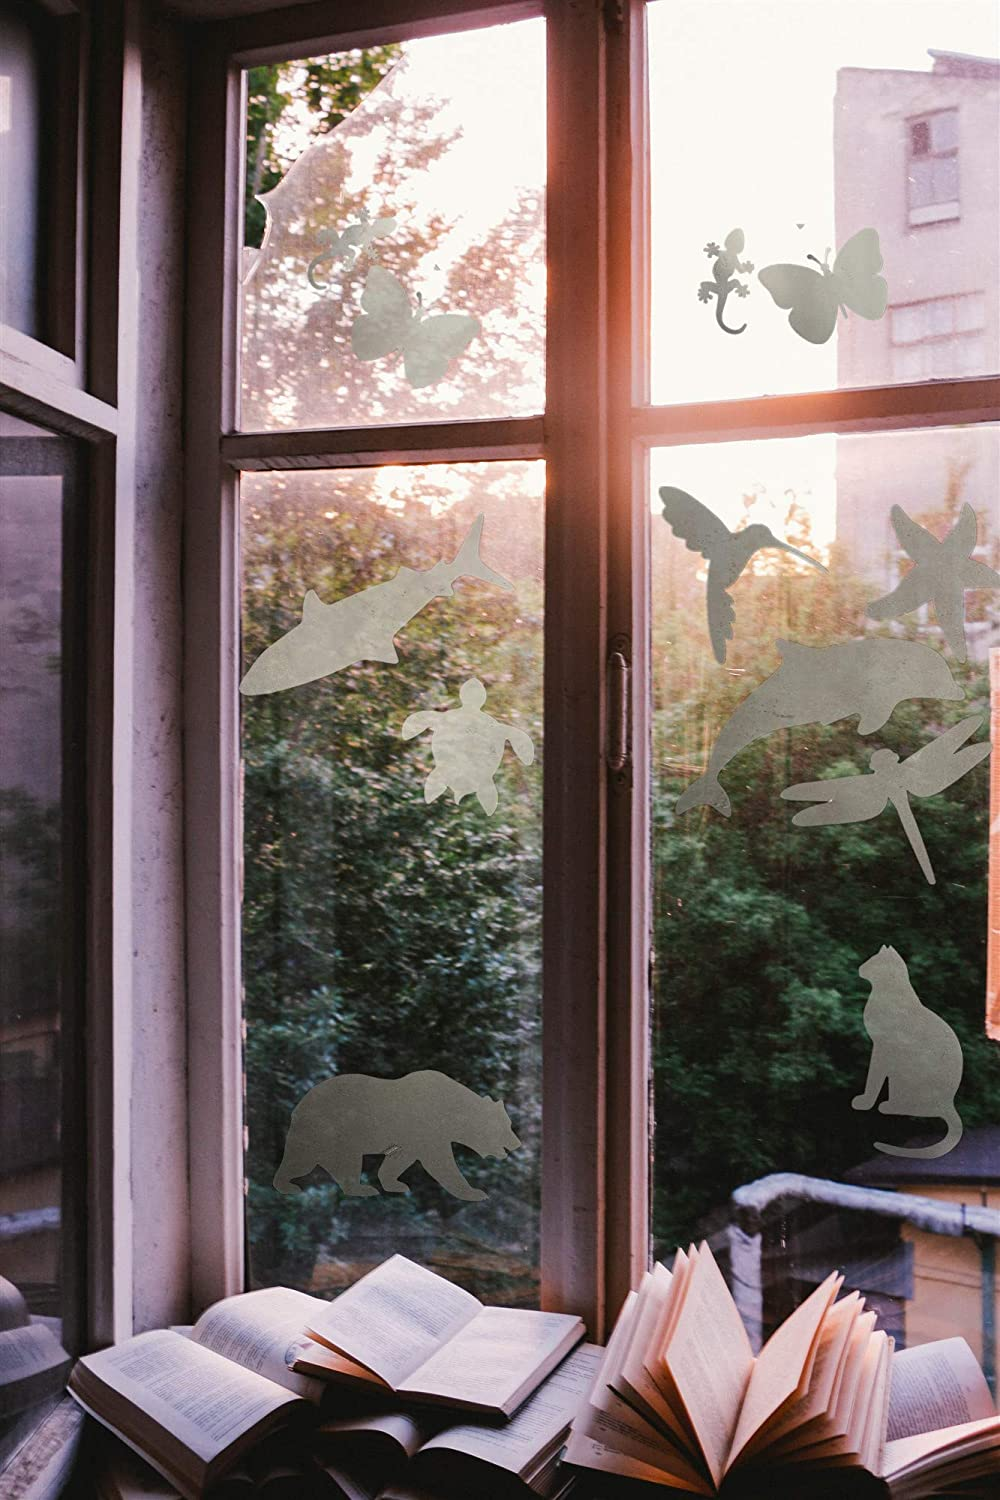 Window Alert Birds Stickers Anti Collision Clings Decals Animals Safey Silhouette for Prevent Birds or Kids on Window Glass,Black 10 Silhouettes